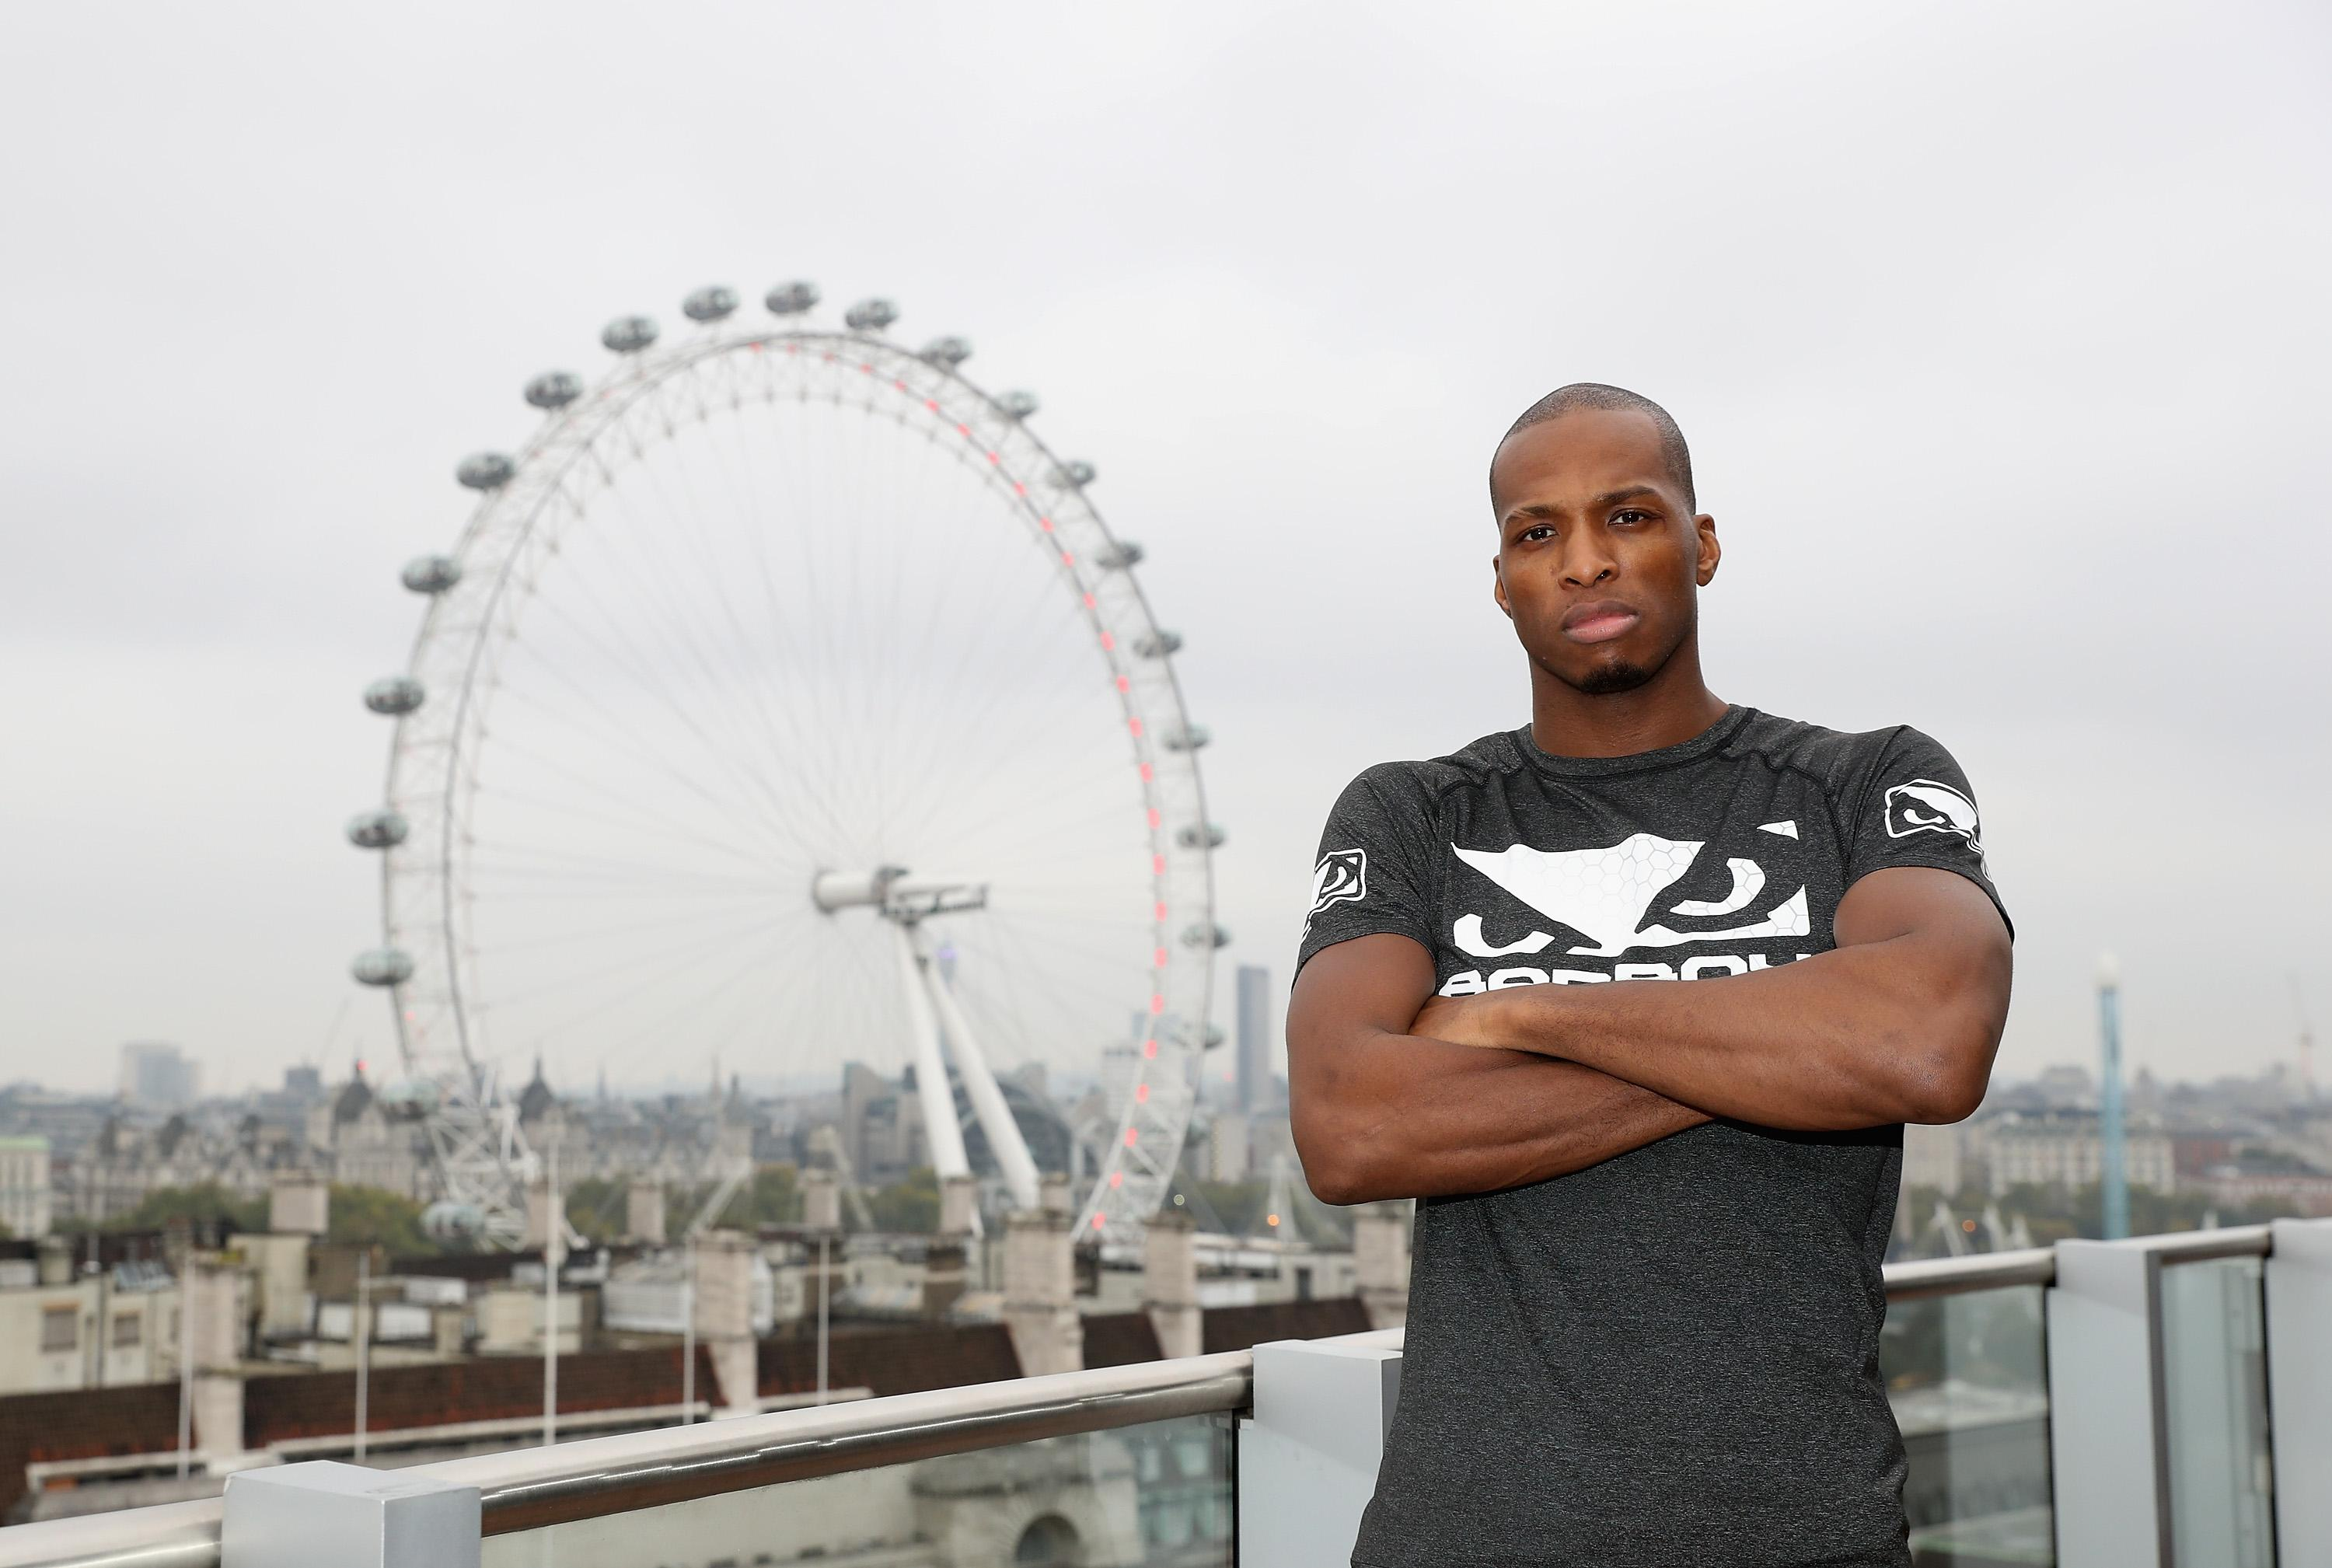 Michael Page will be going up against David Rickels